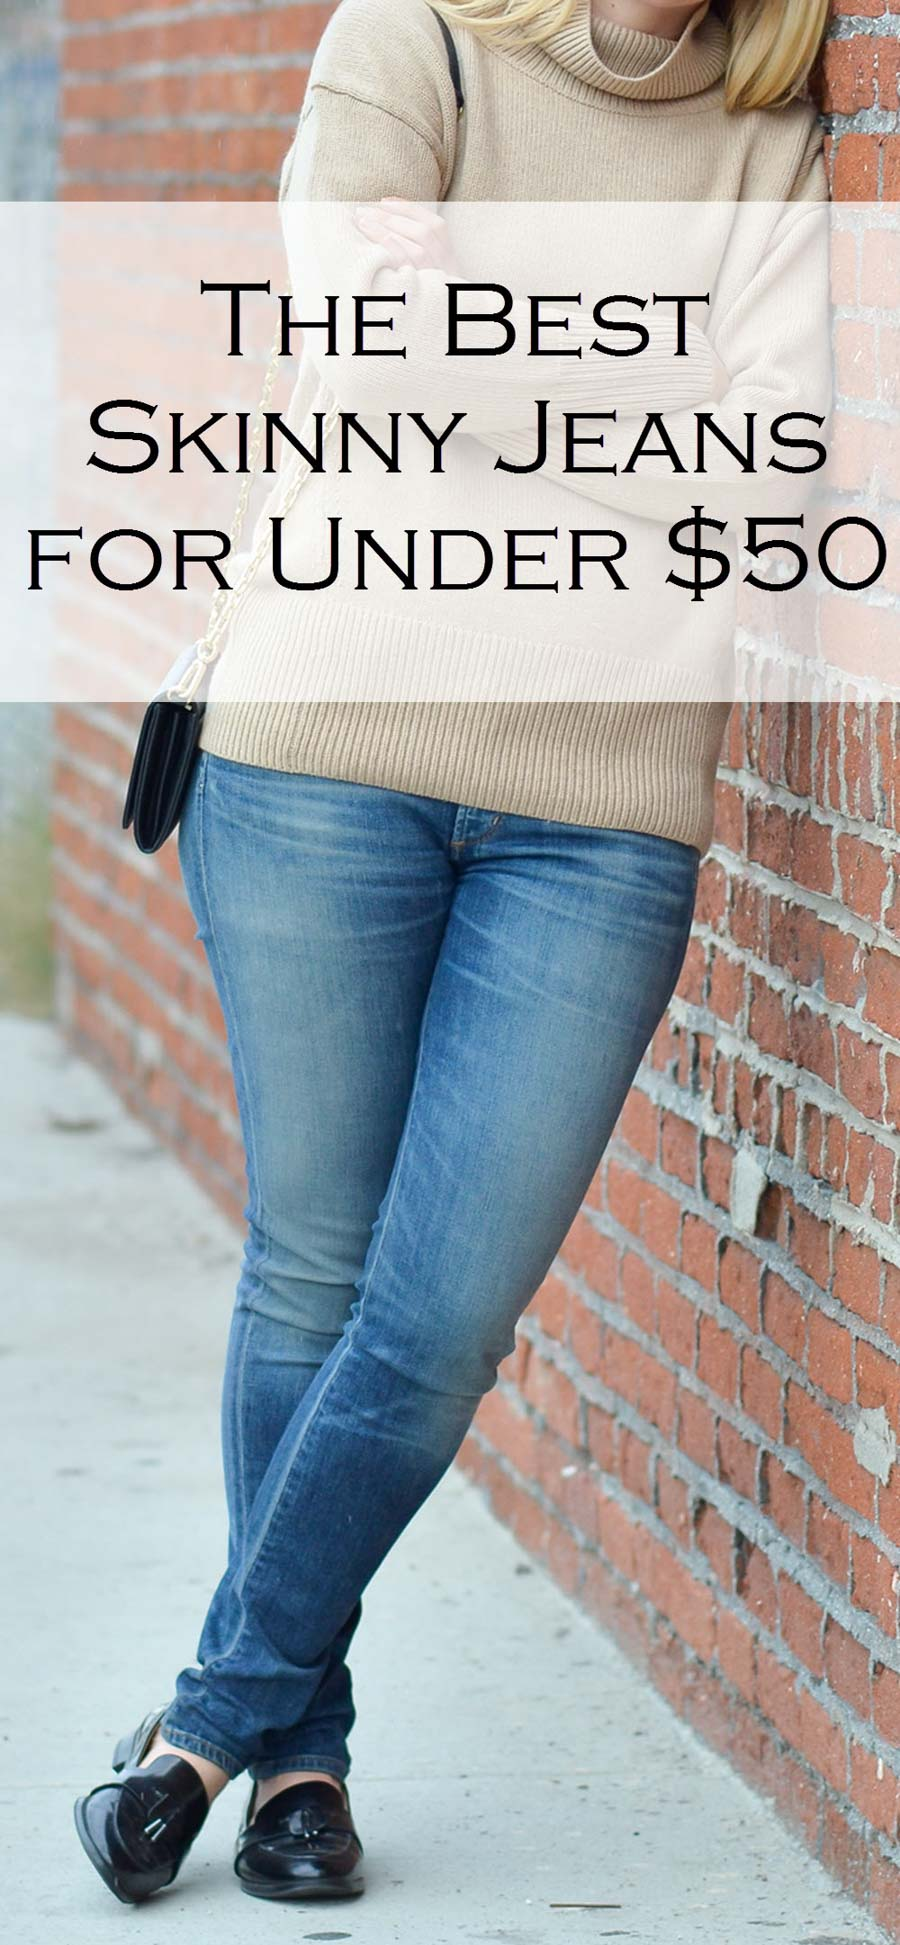 Skinny jeans under 50